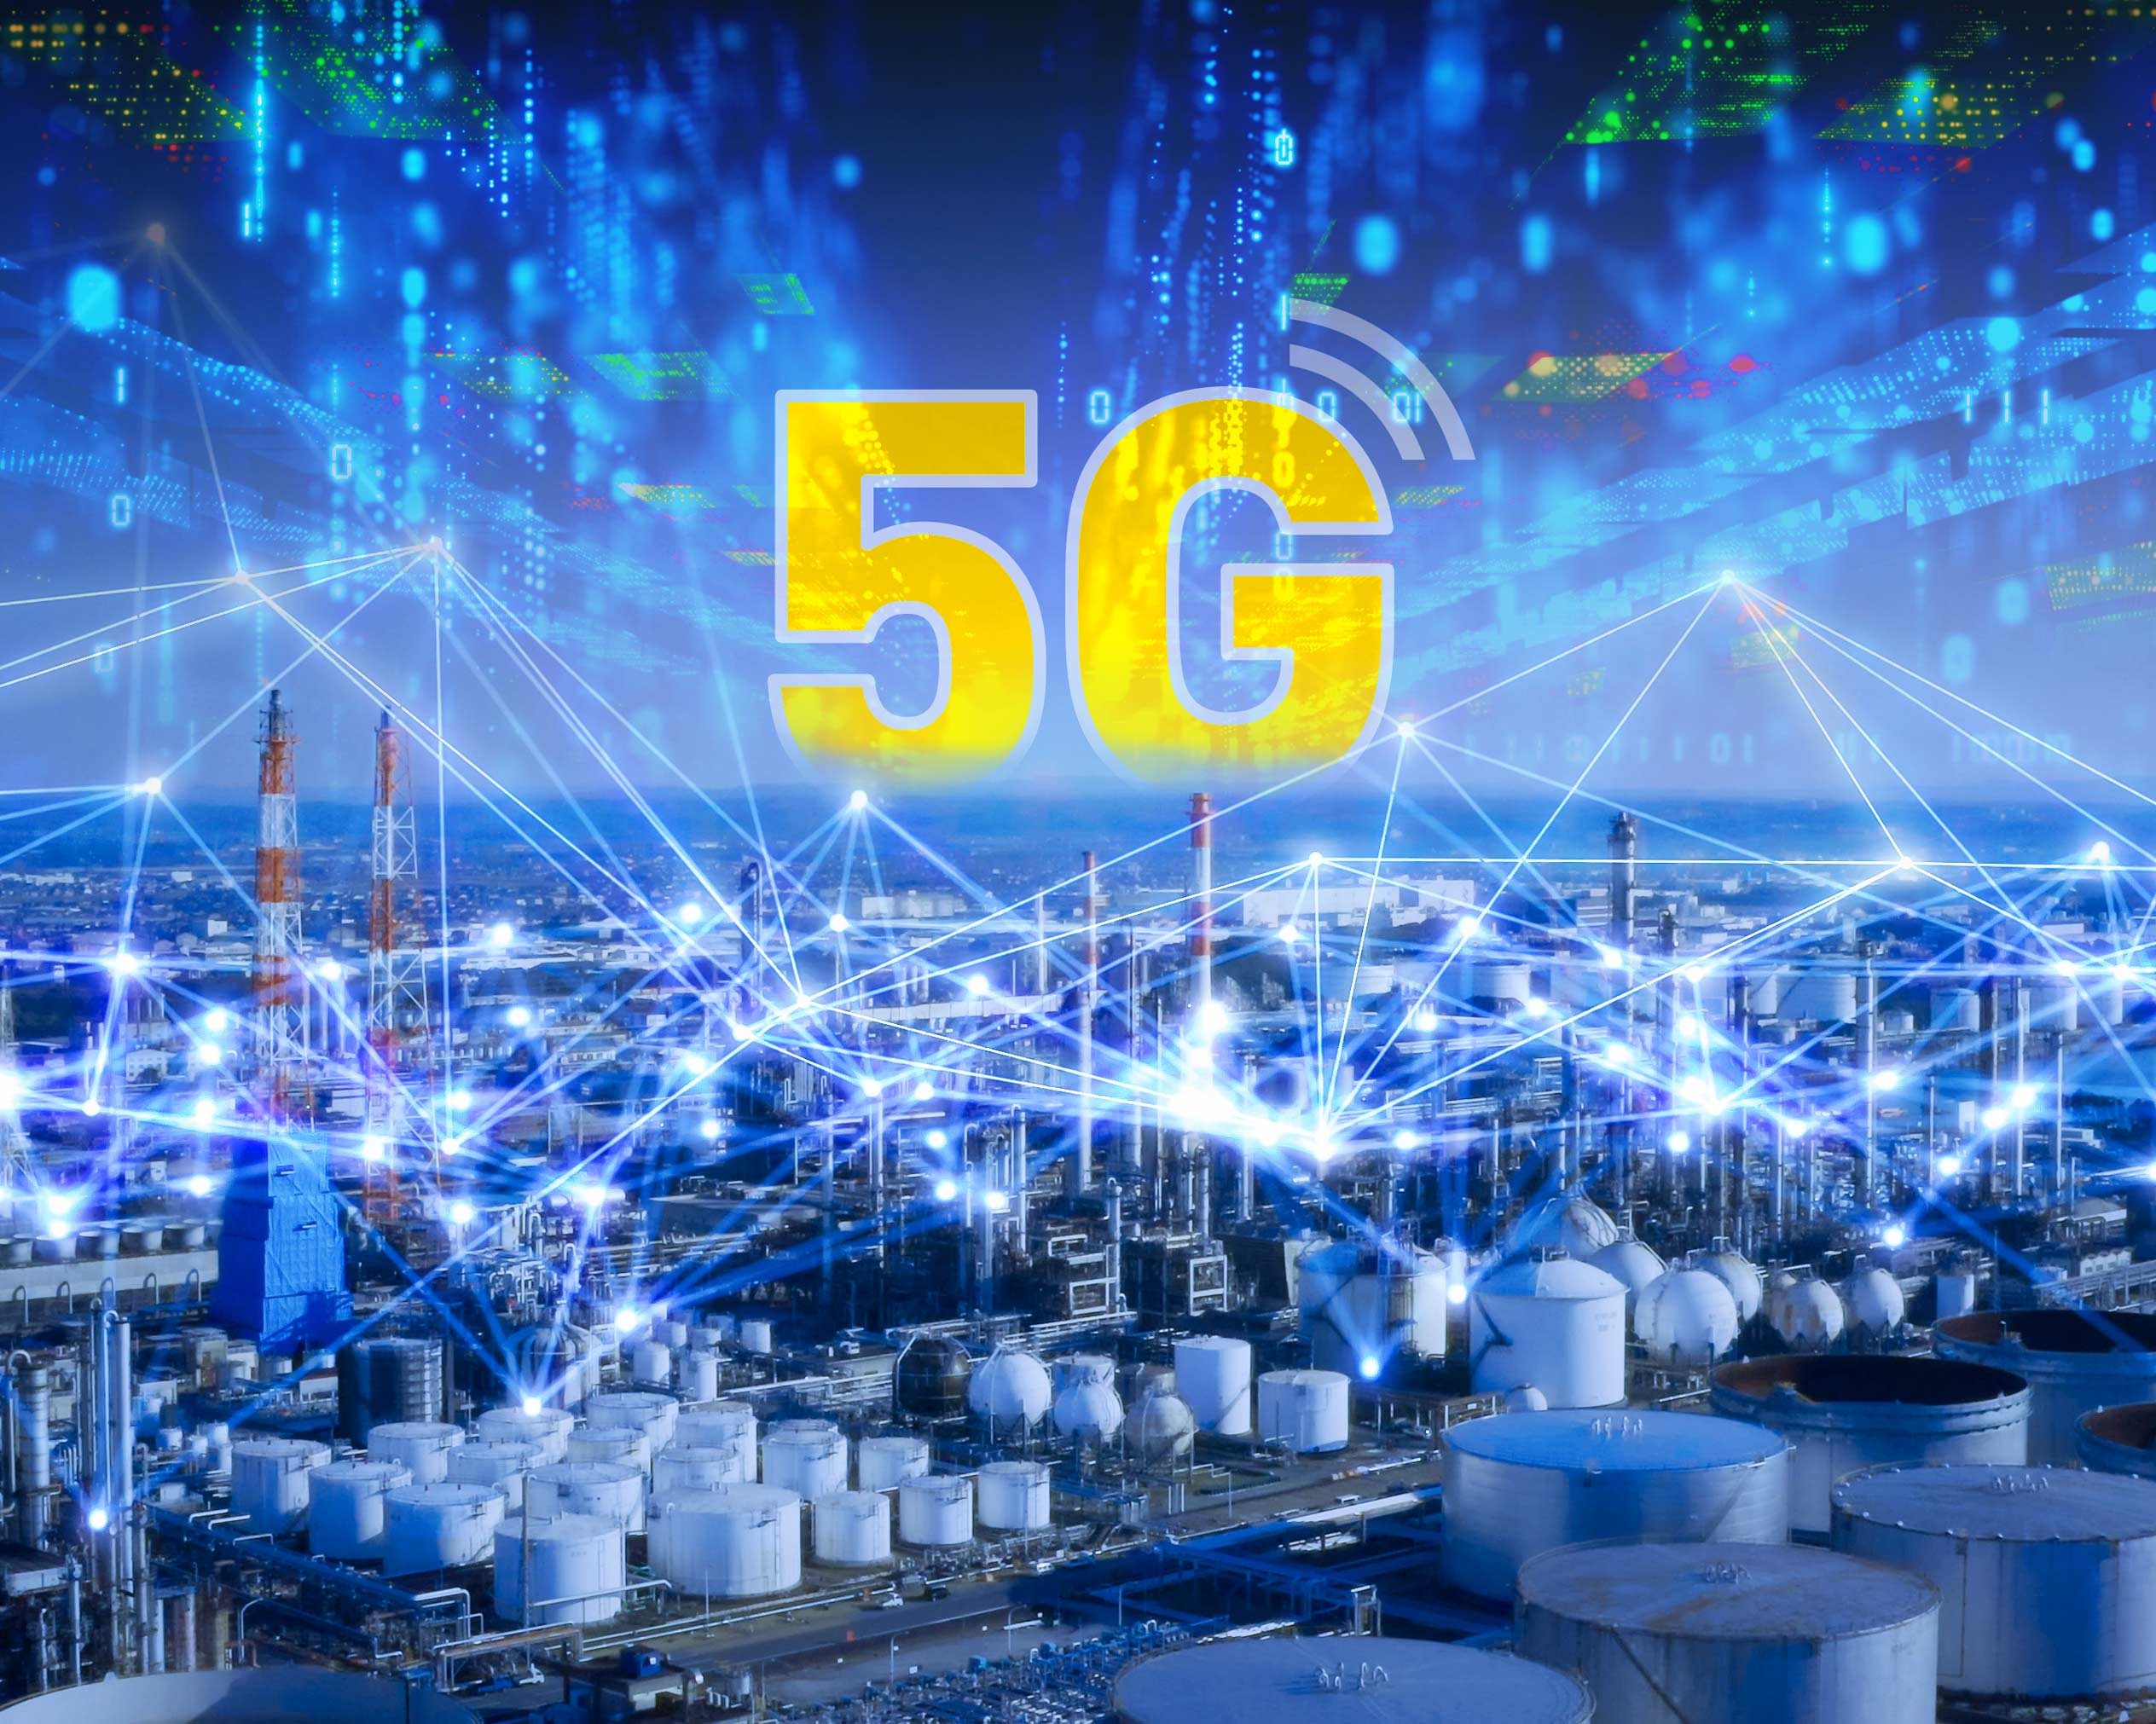 itsa 365: View of a city with 5G in the sky